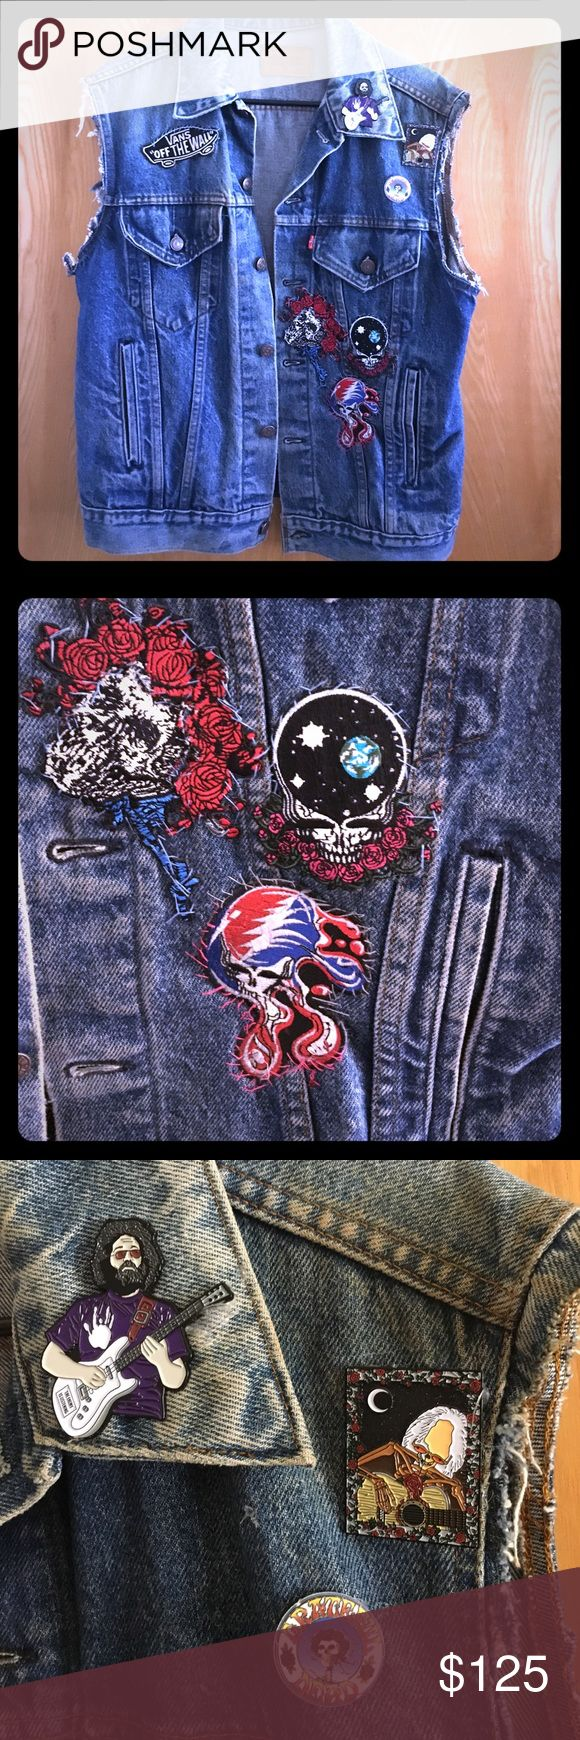 Cut off sleeve vintage Levi's vest patches pins Selling a vintage 1980s Levi's vest cut off sleeves with great patchwork I sewed on as the artist for this gem! Has Grateful Dead patches and a Powell skateboards patch on the back. Also included are some limited edition Grateful Dead hat pins that have Jerry Garcia and skeleton playing guitar buttons  in right side of the collar on vest. This is a handmade item and has a lot of great times and memories to be passed down to someone who enjoys…